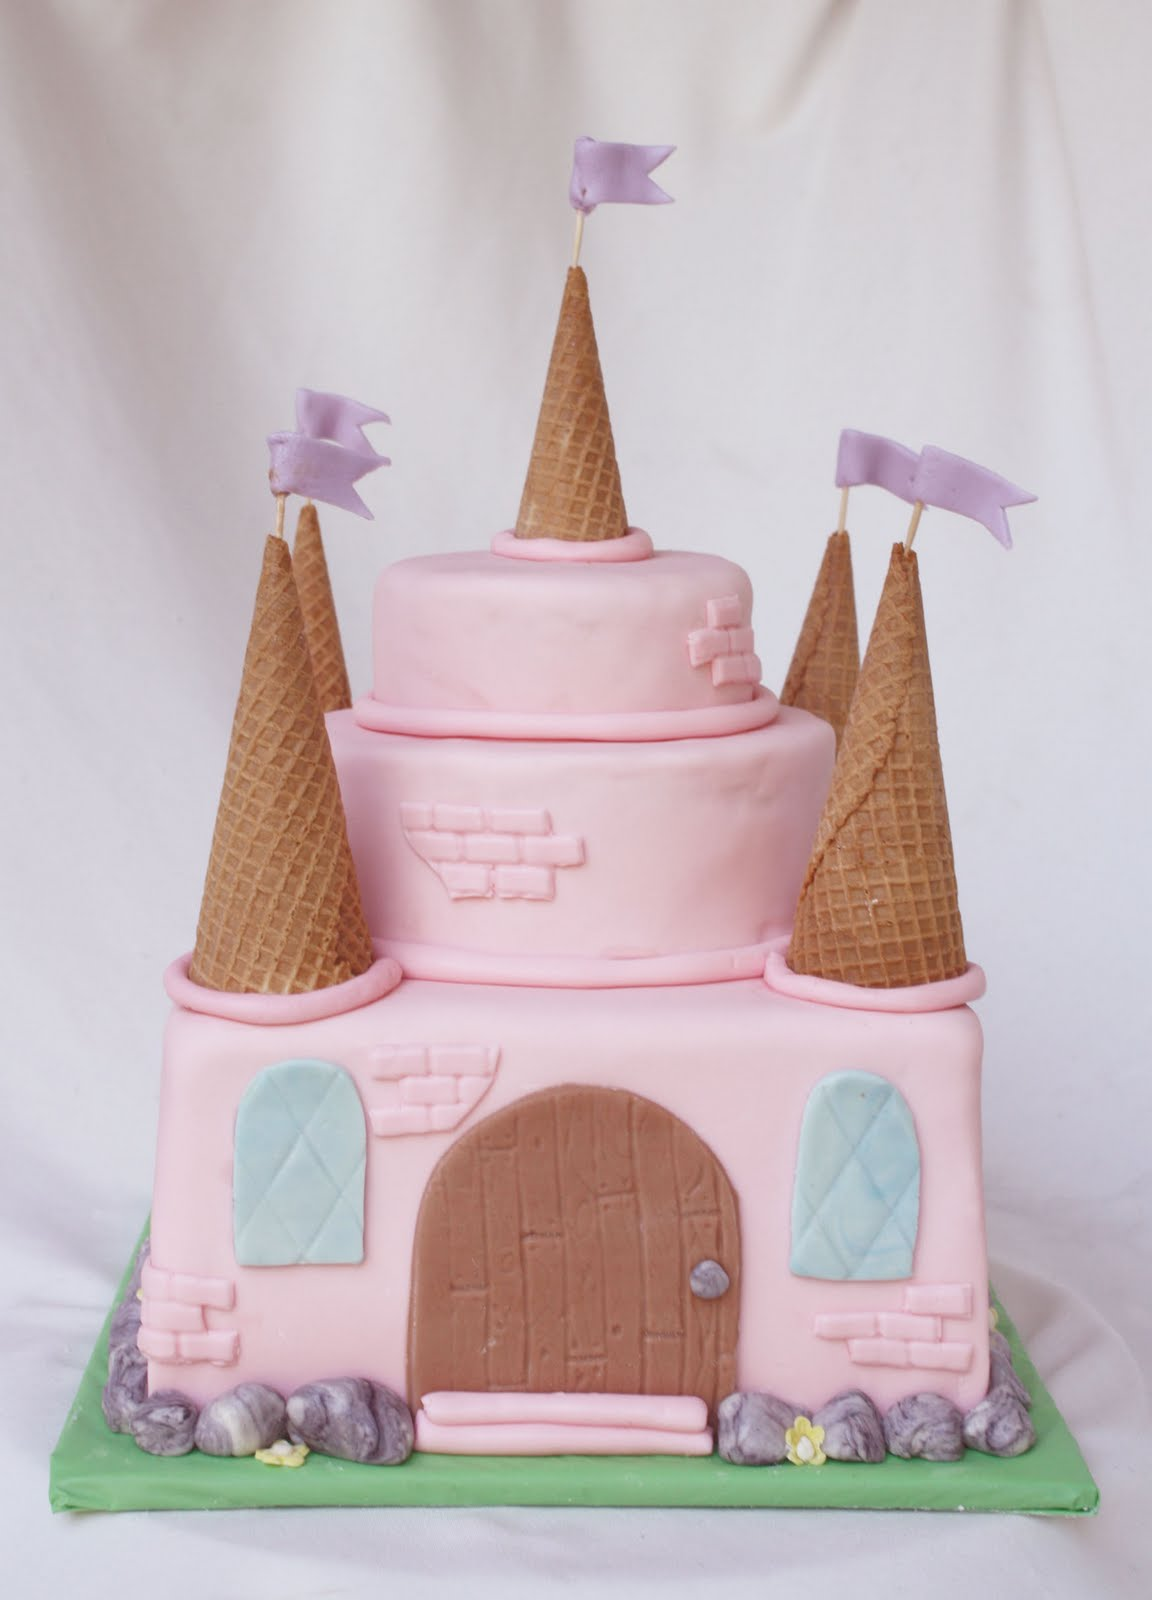 Pictures Of Princess Castle Cake : Girlie pink fairy princess castle cake with three also ...